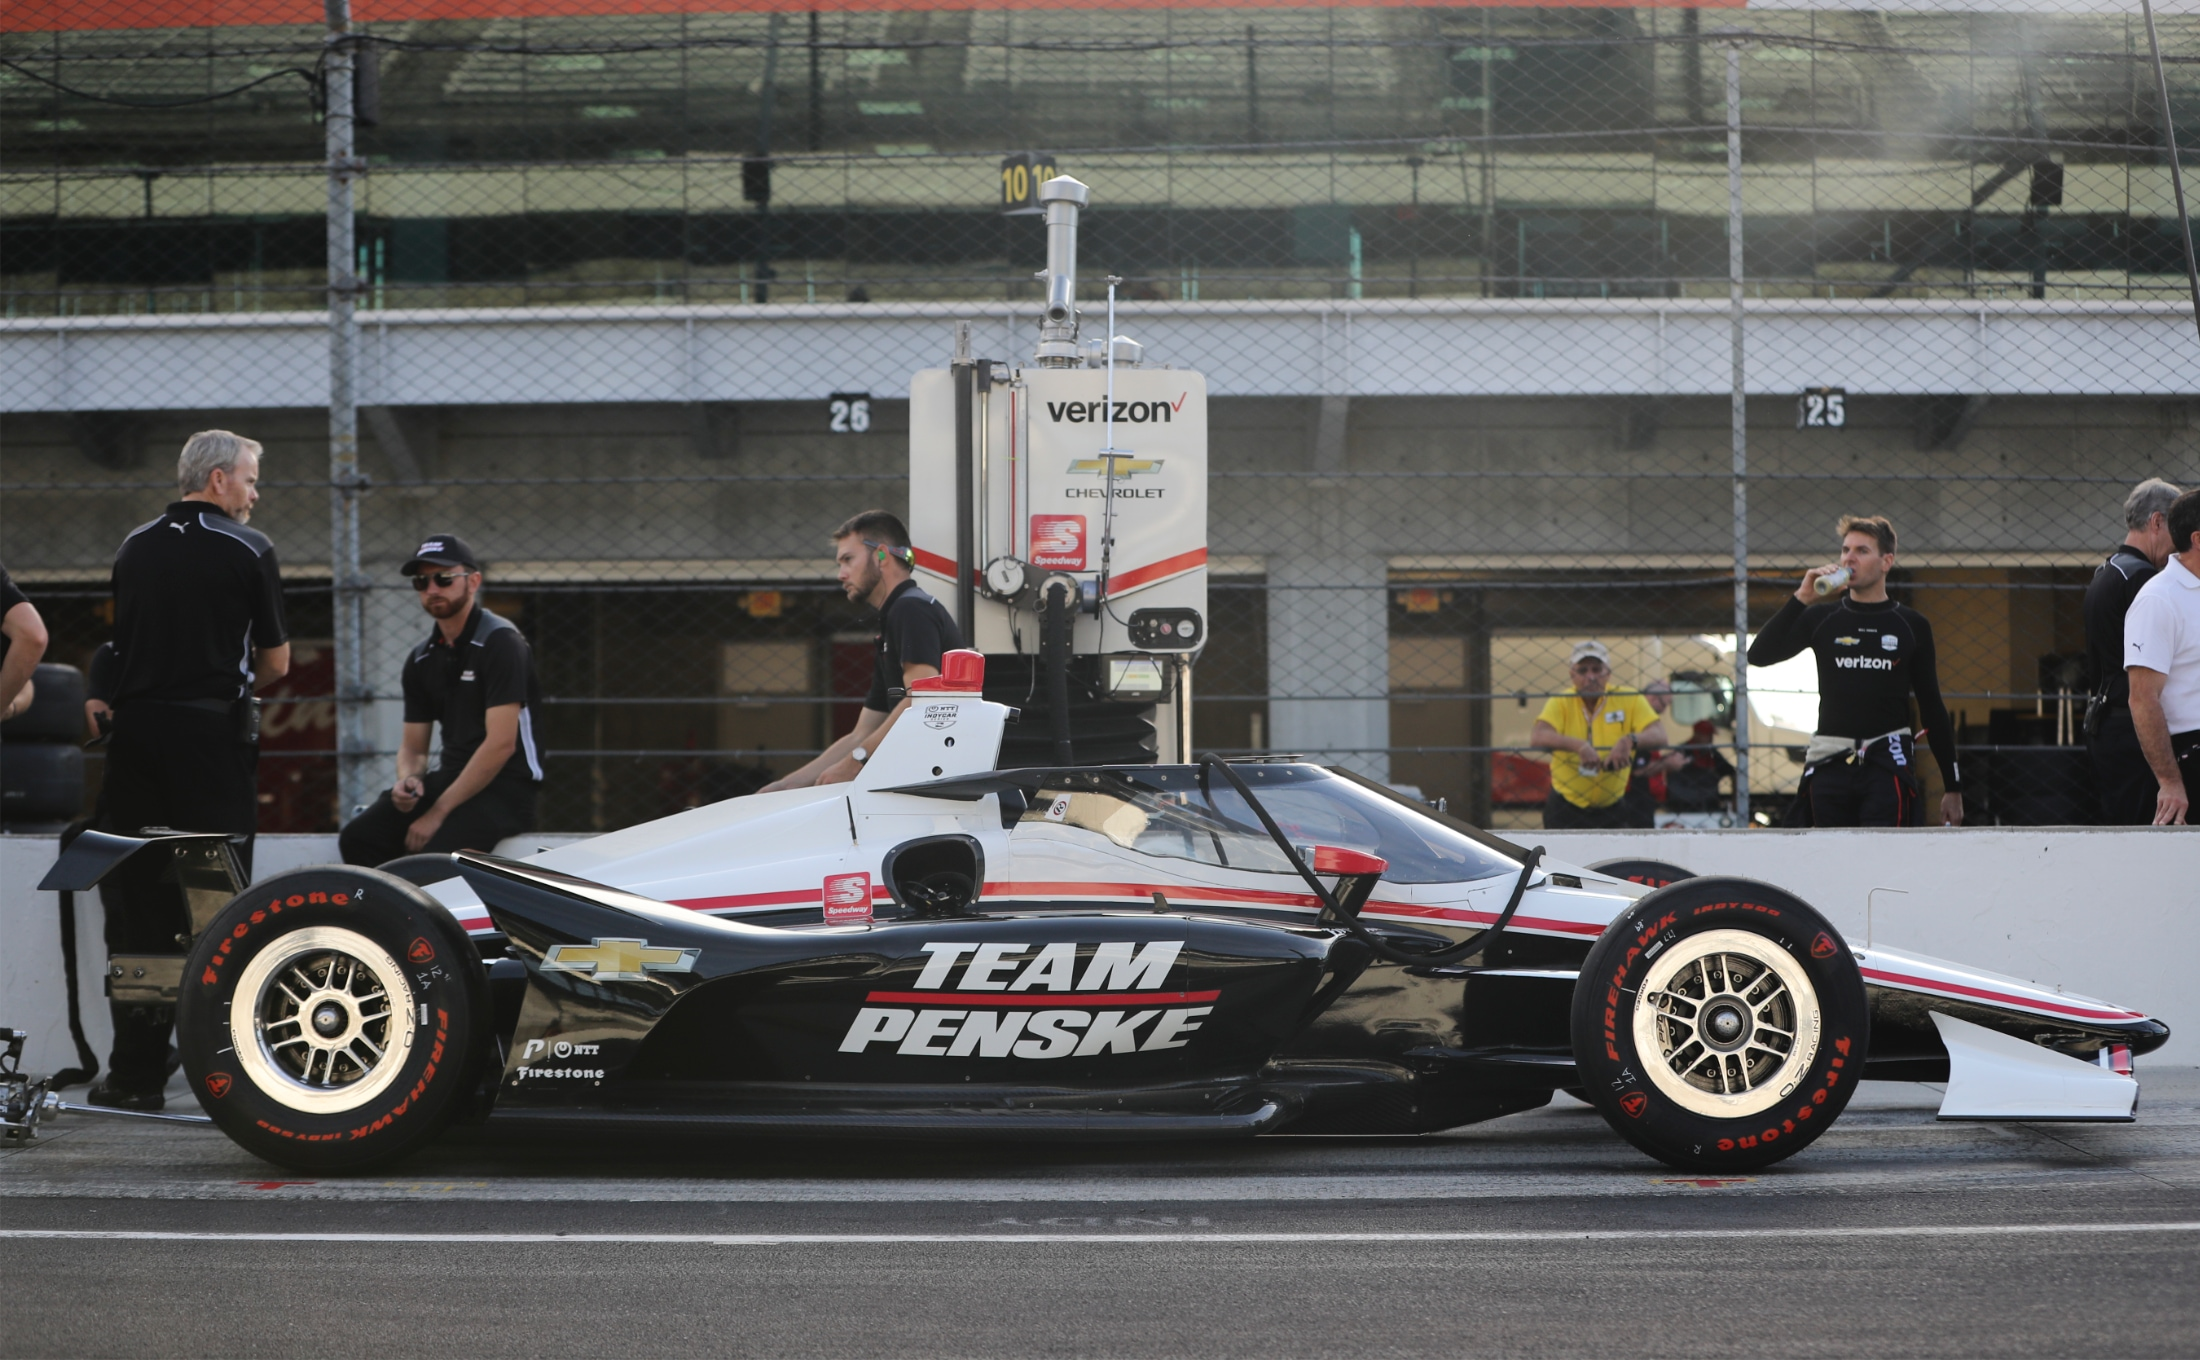 Aeroscreen on Penske Indy car at IMS